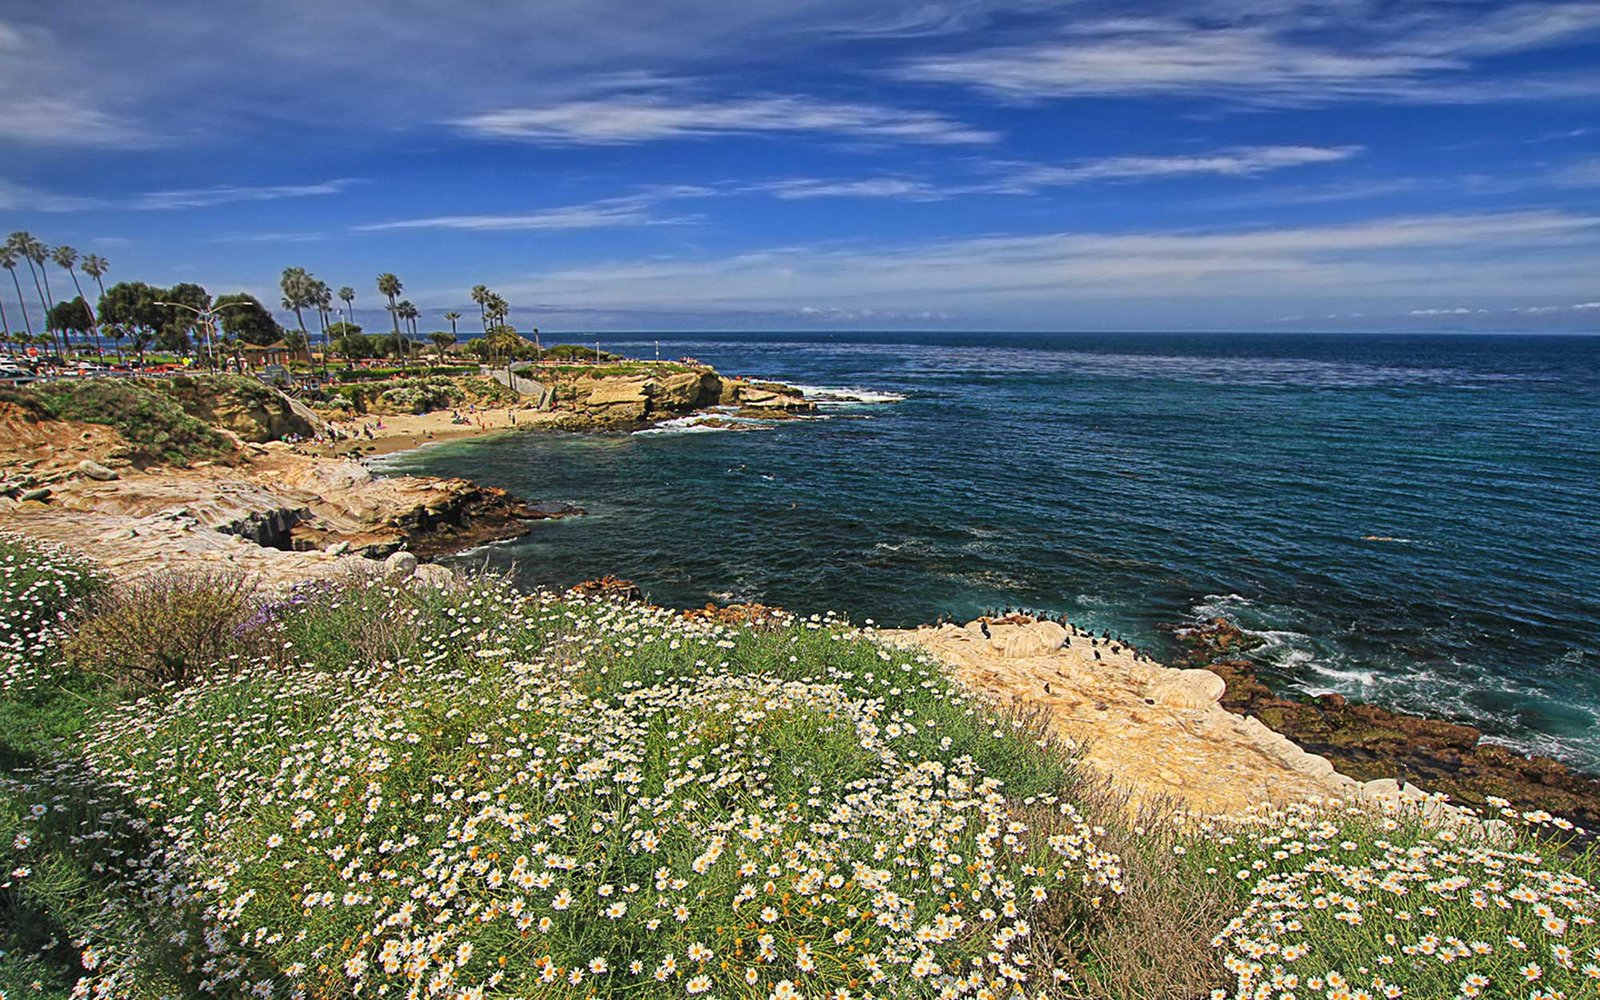 La Jolla Cove in California